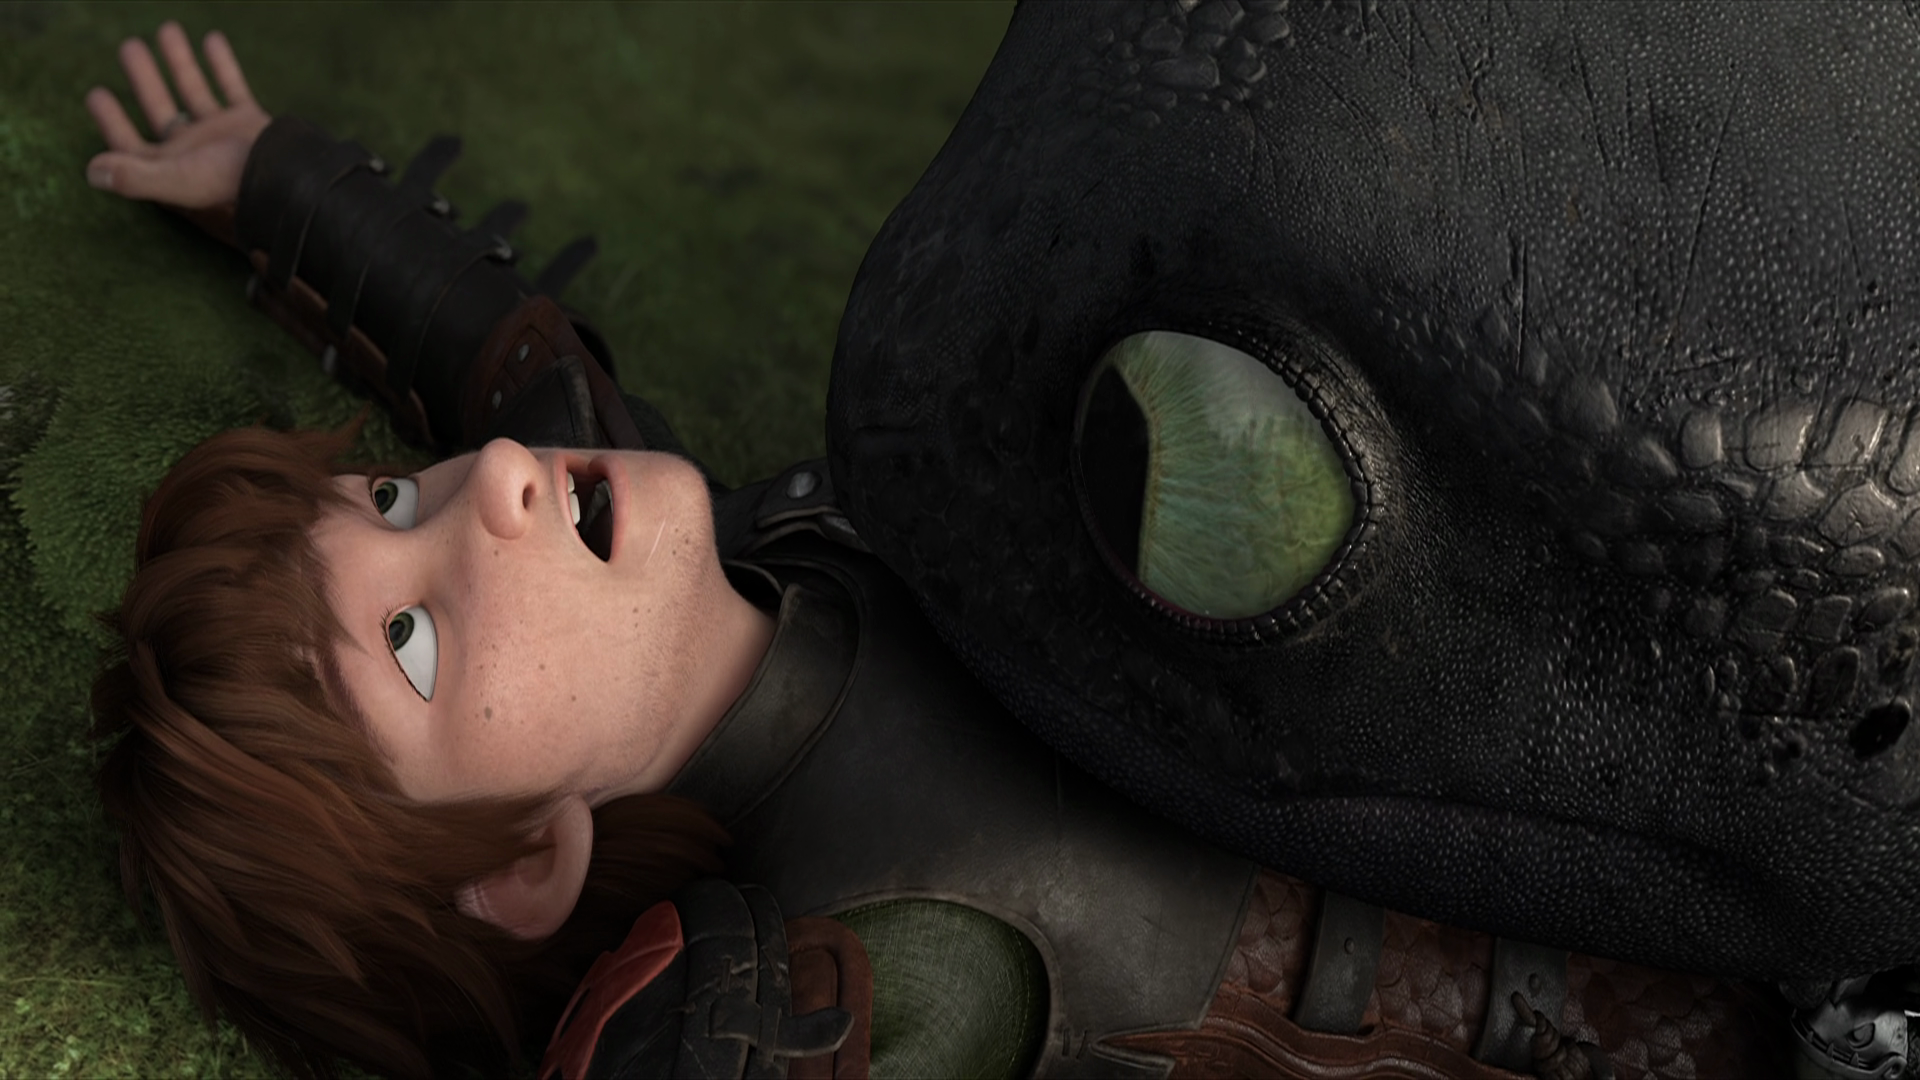 2014 how to train your dragon hd movies 4k wallpapers - How to train your dragon hd download ...